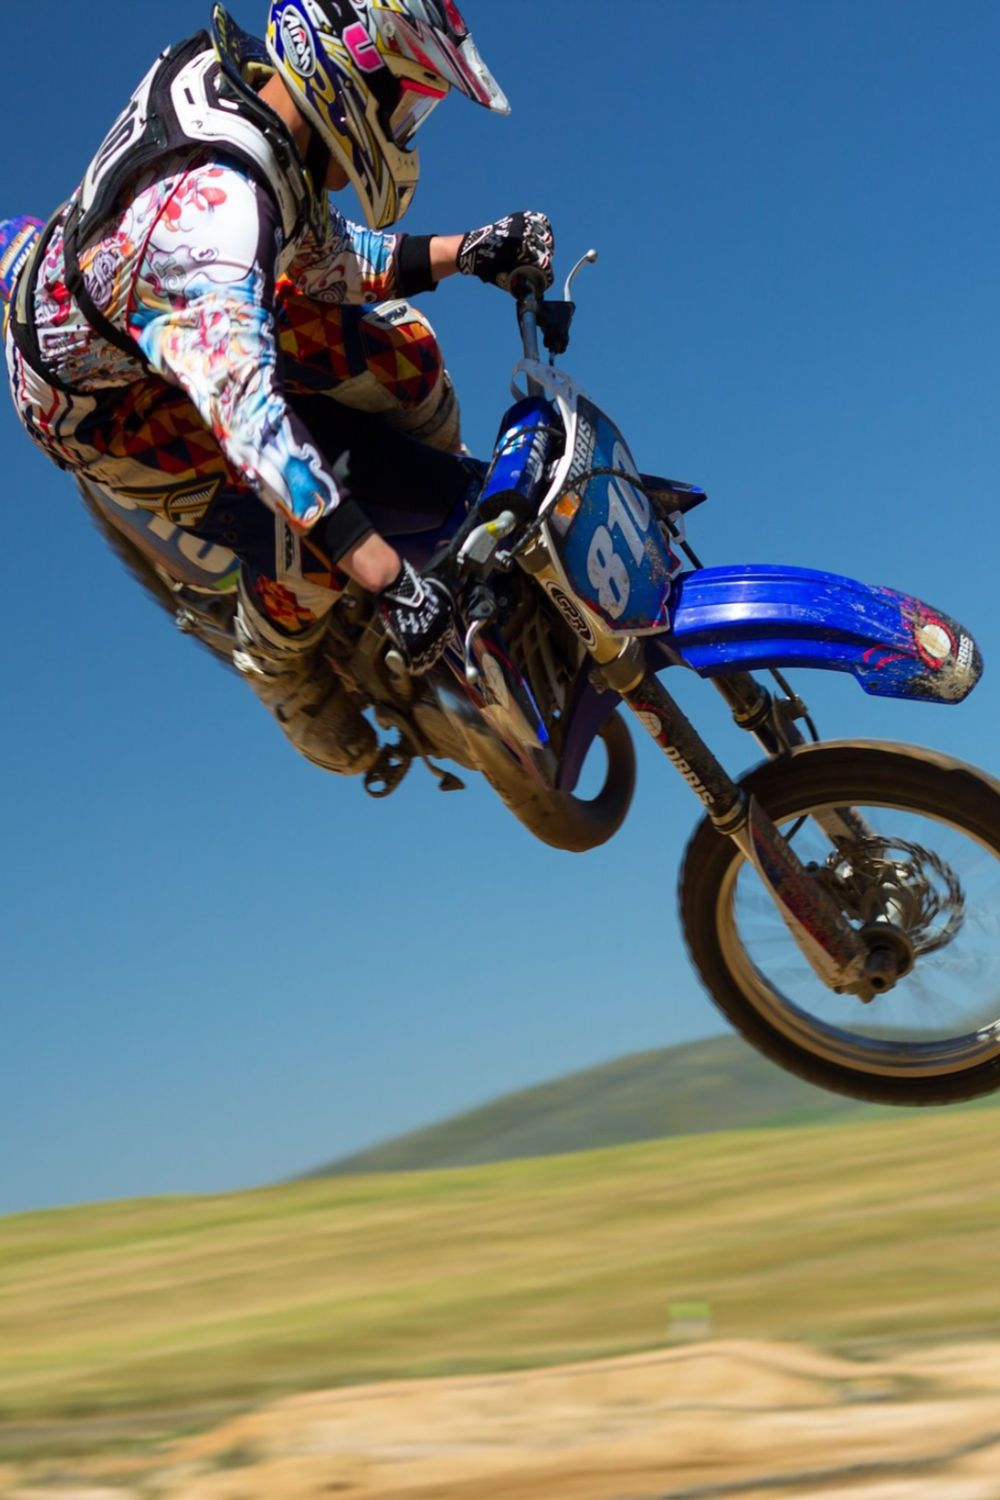 Trendy Dirt Bike Riding Picture in 2020 Bike photography